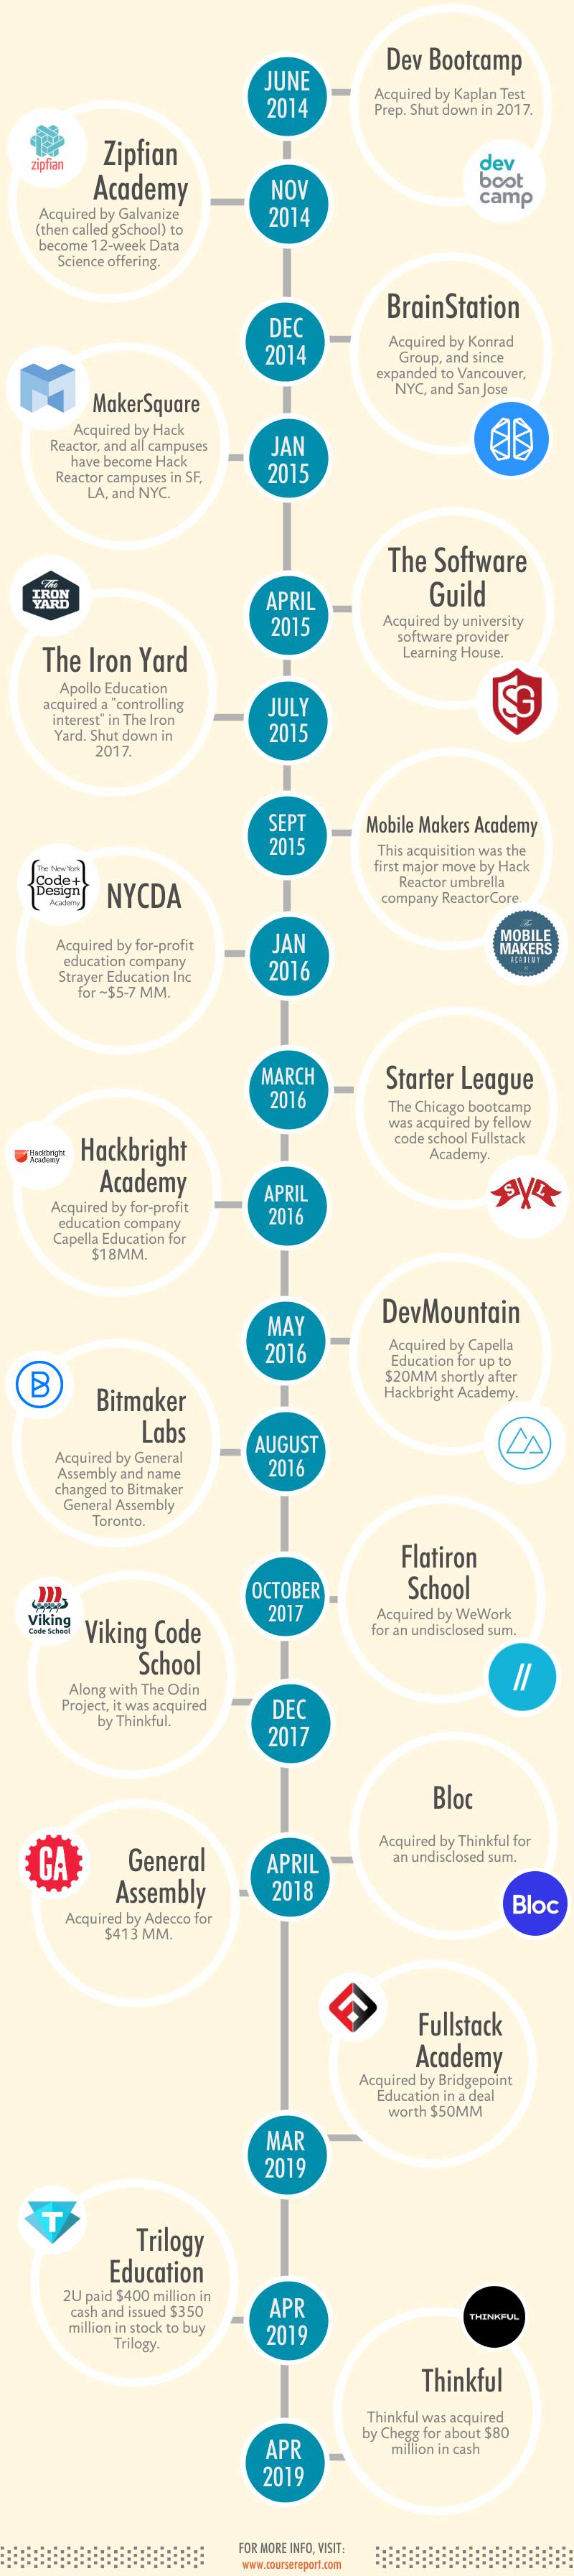 coding bootcamp acquisition market infographic